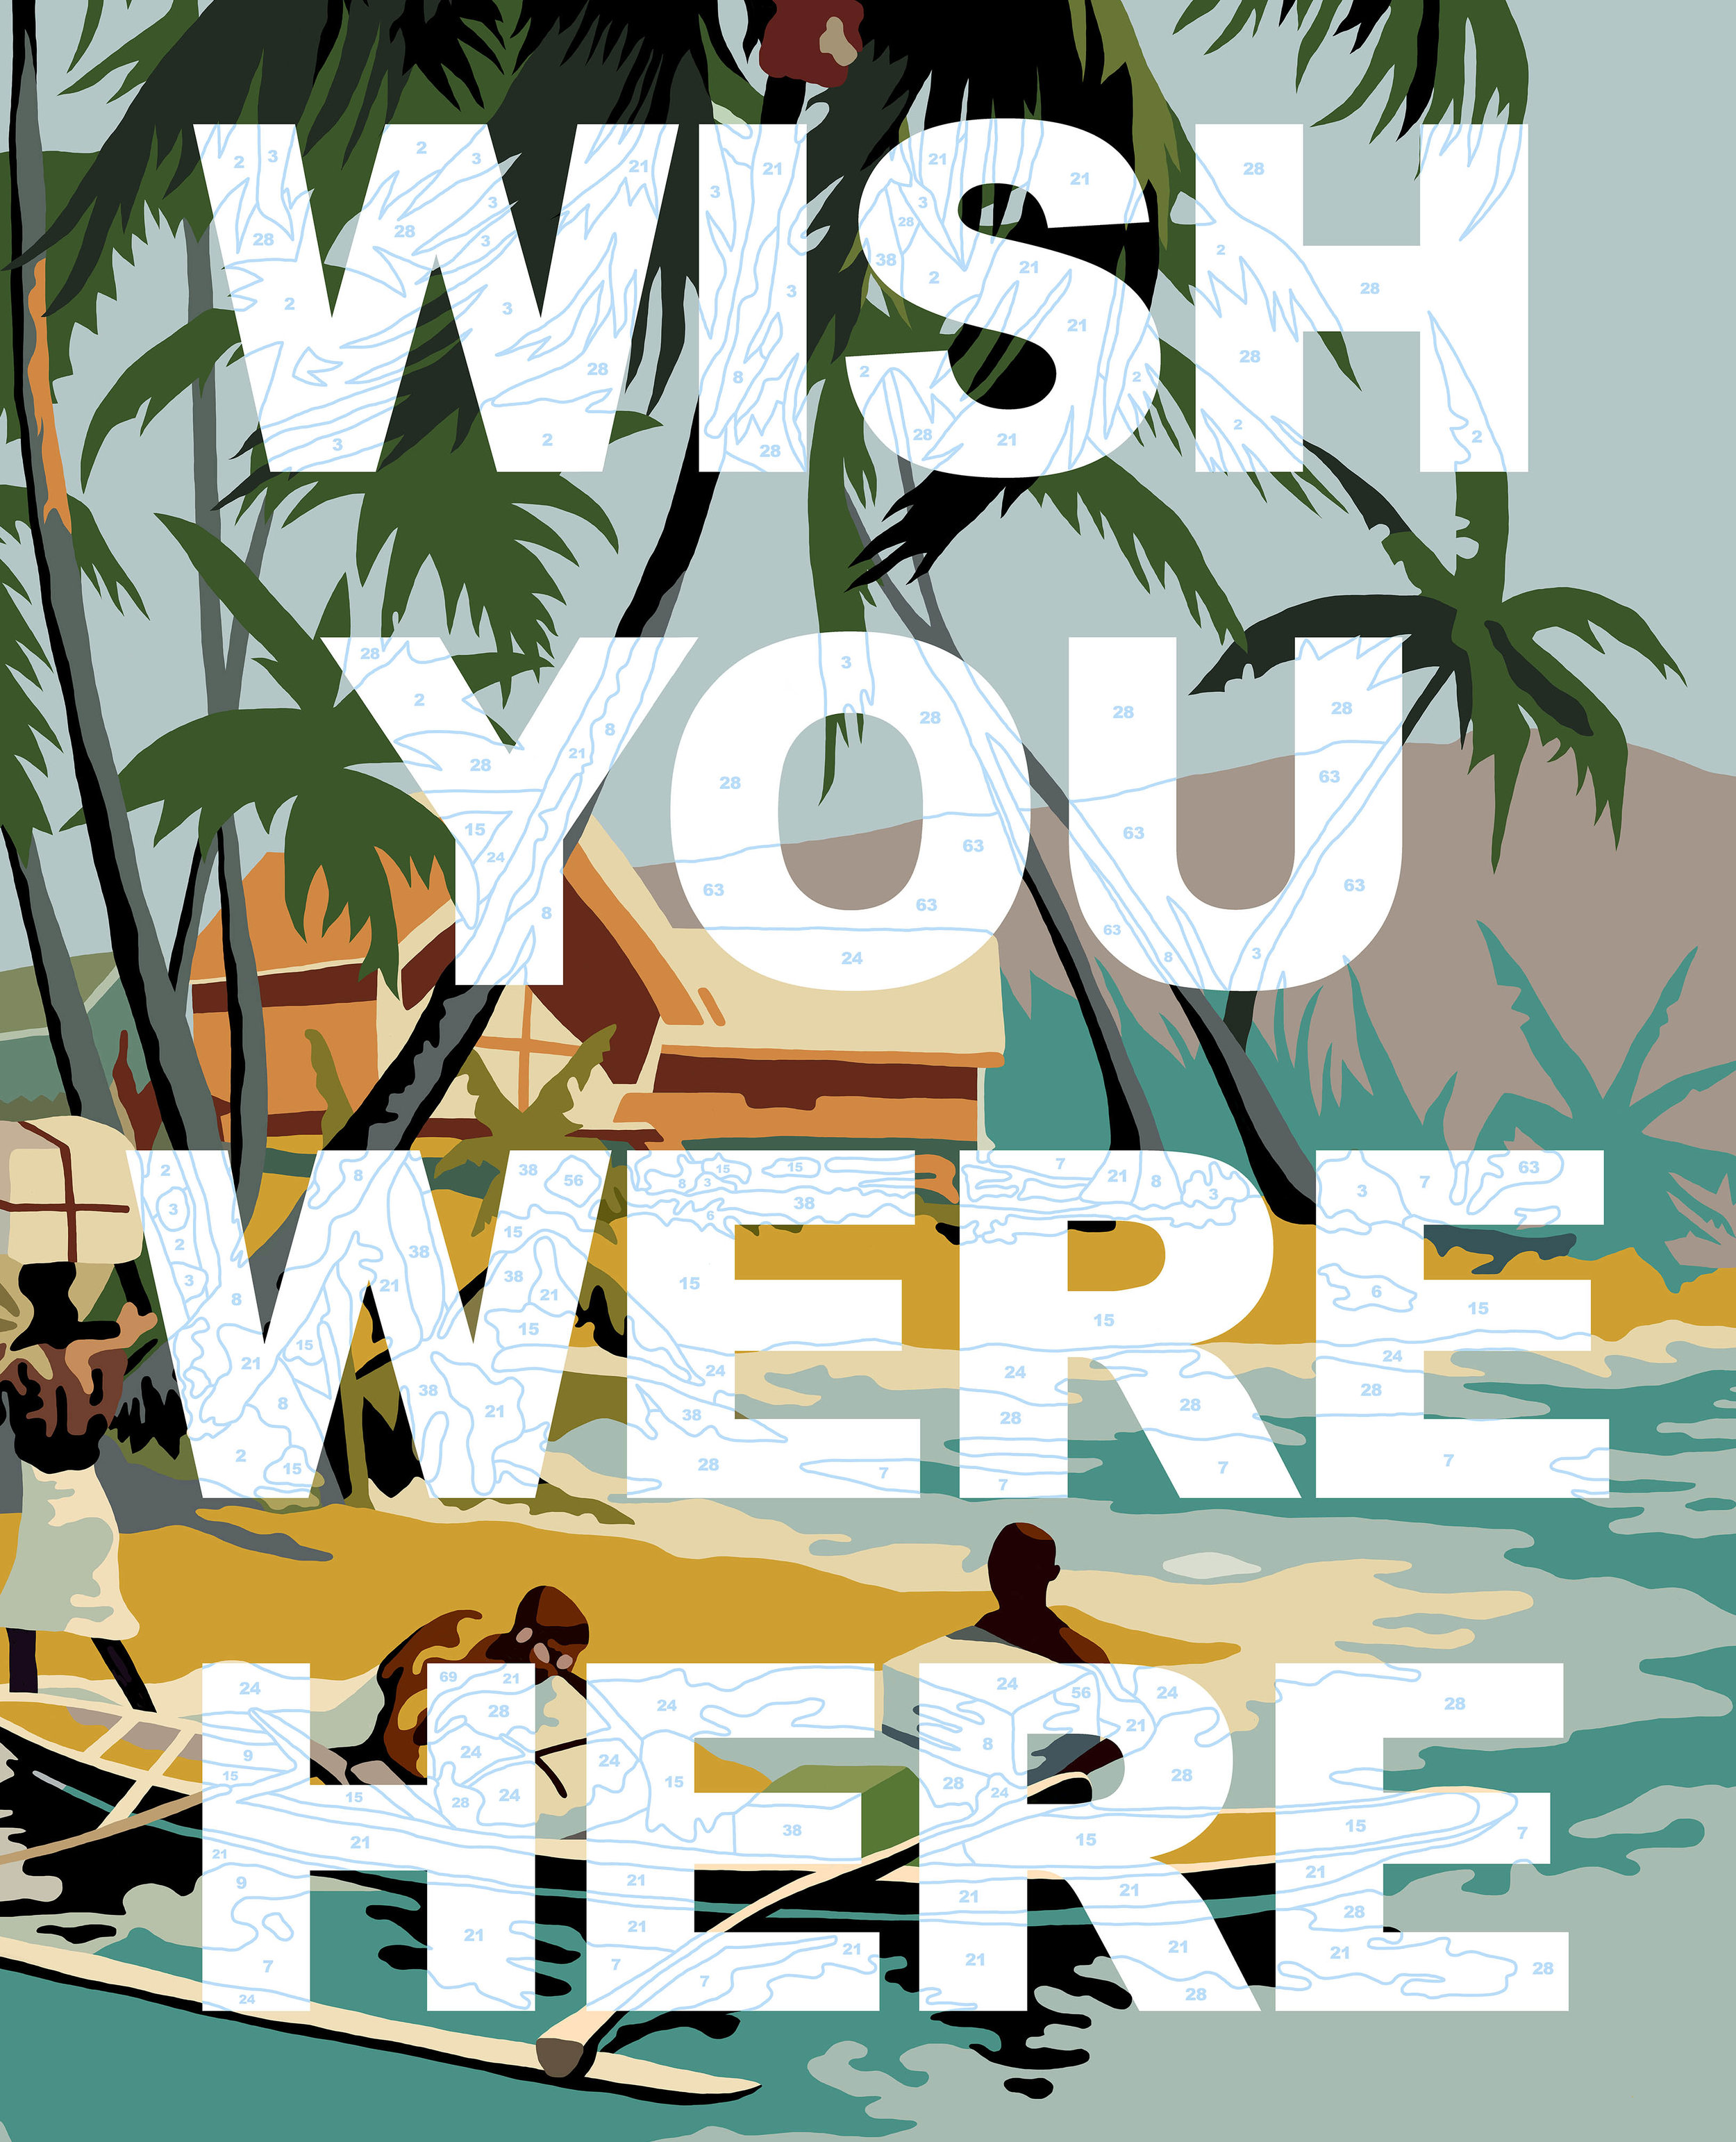 Wish You Were Here II   Enamel gloss paint on canvas  90 x 115 cm  2018  SOLD  This image is also available as a limited edition print. Please visit the website's shop for more information.